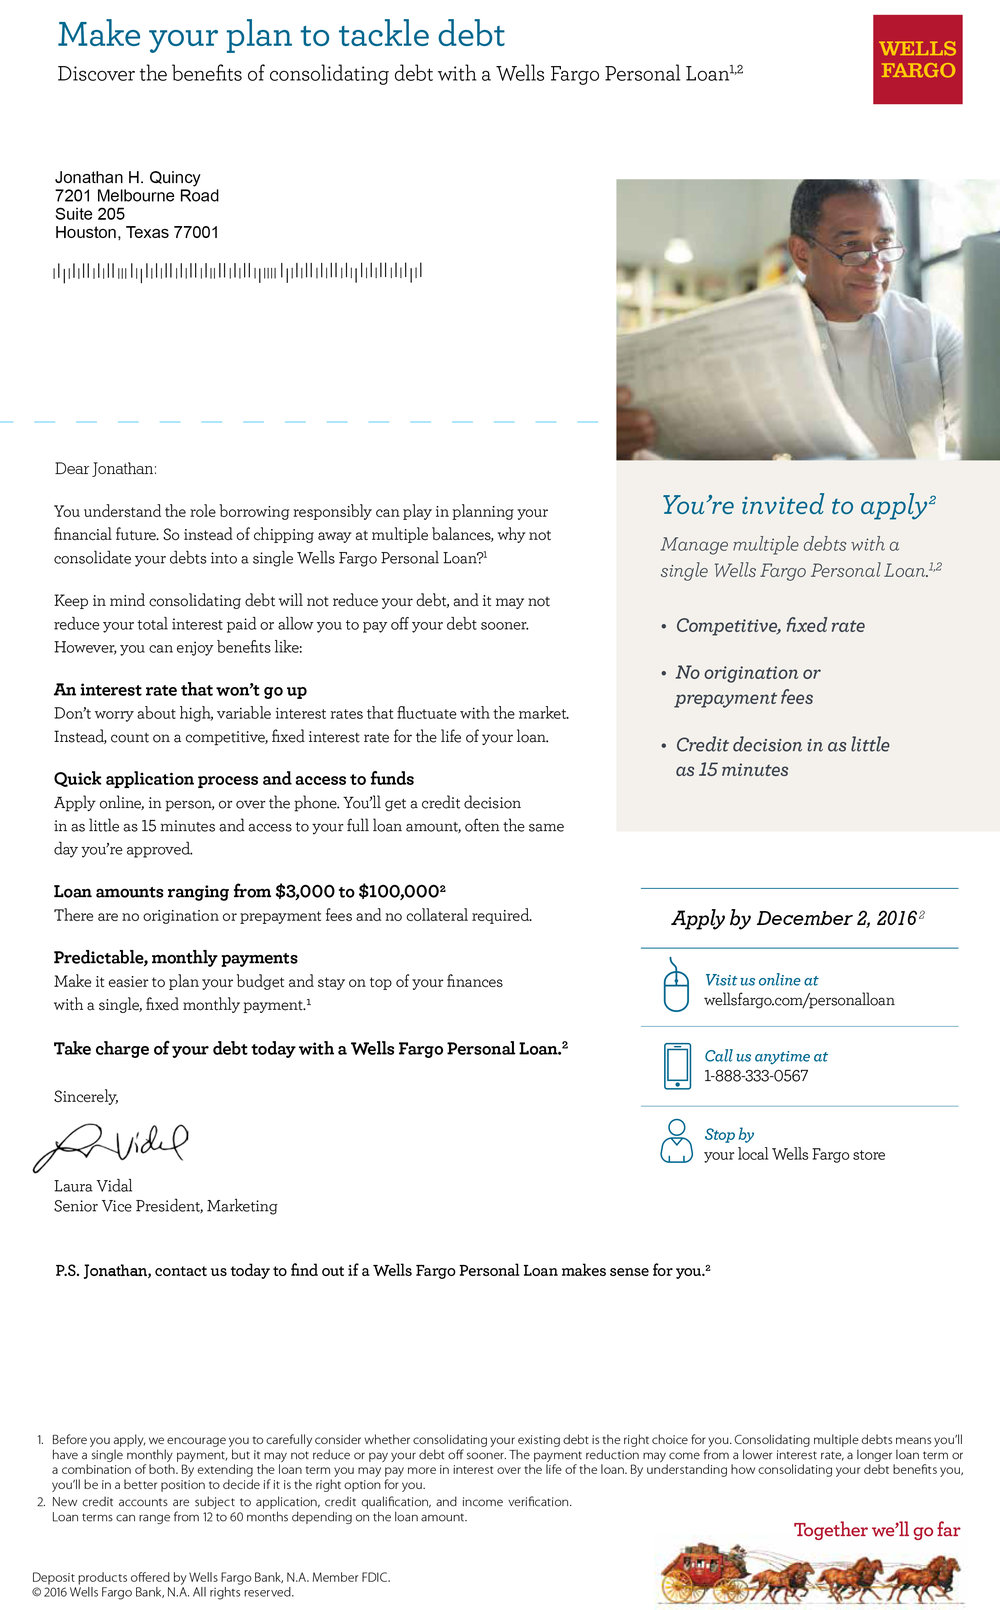 Wells Fargo Direct Mail And Collateral Meghan Rygg